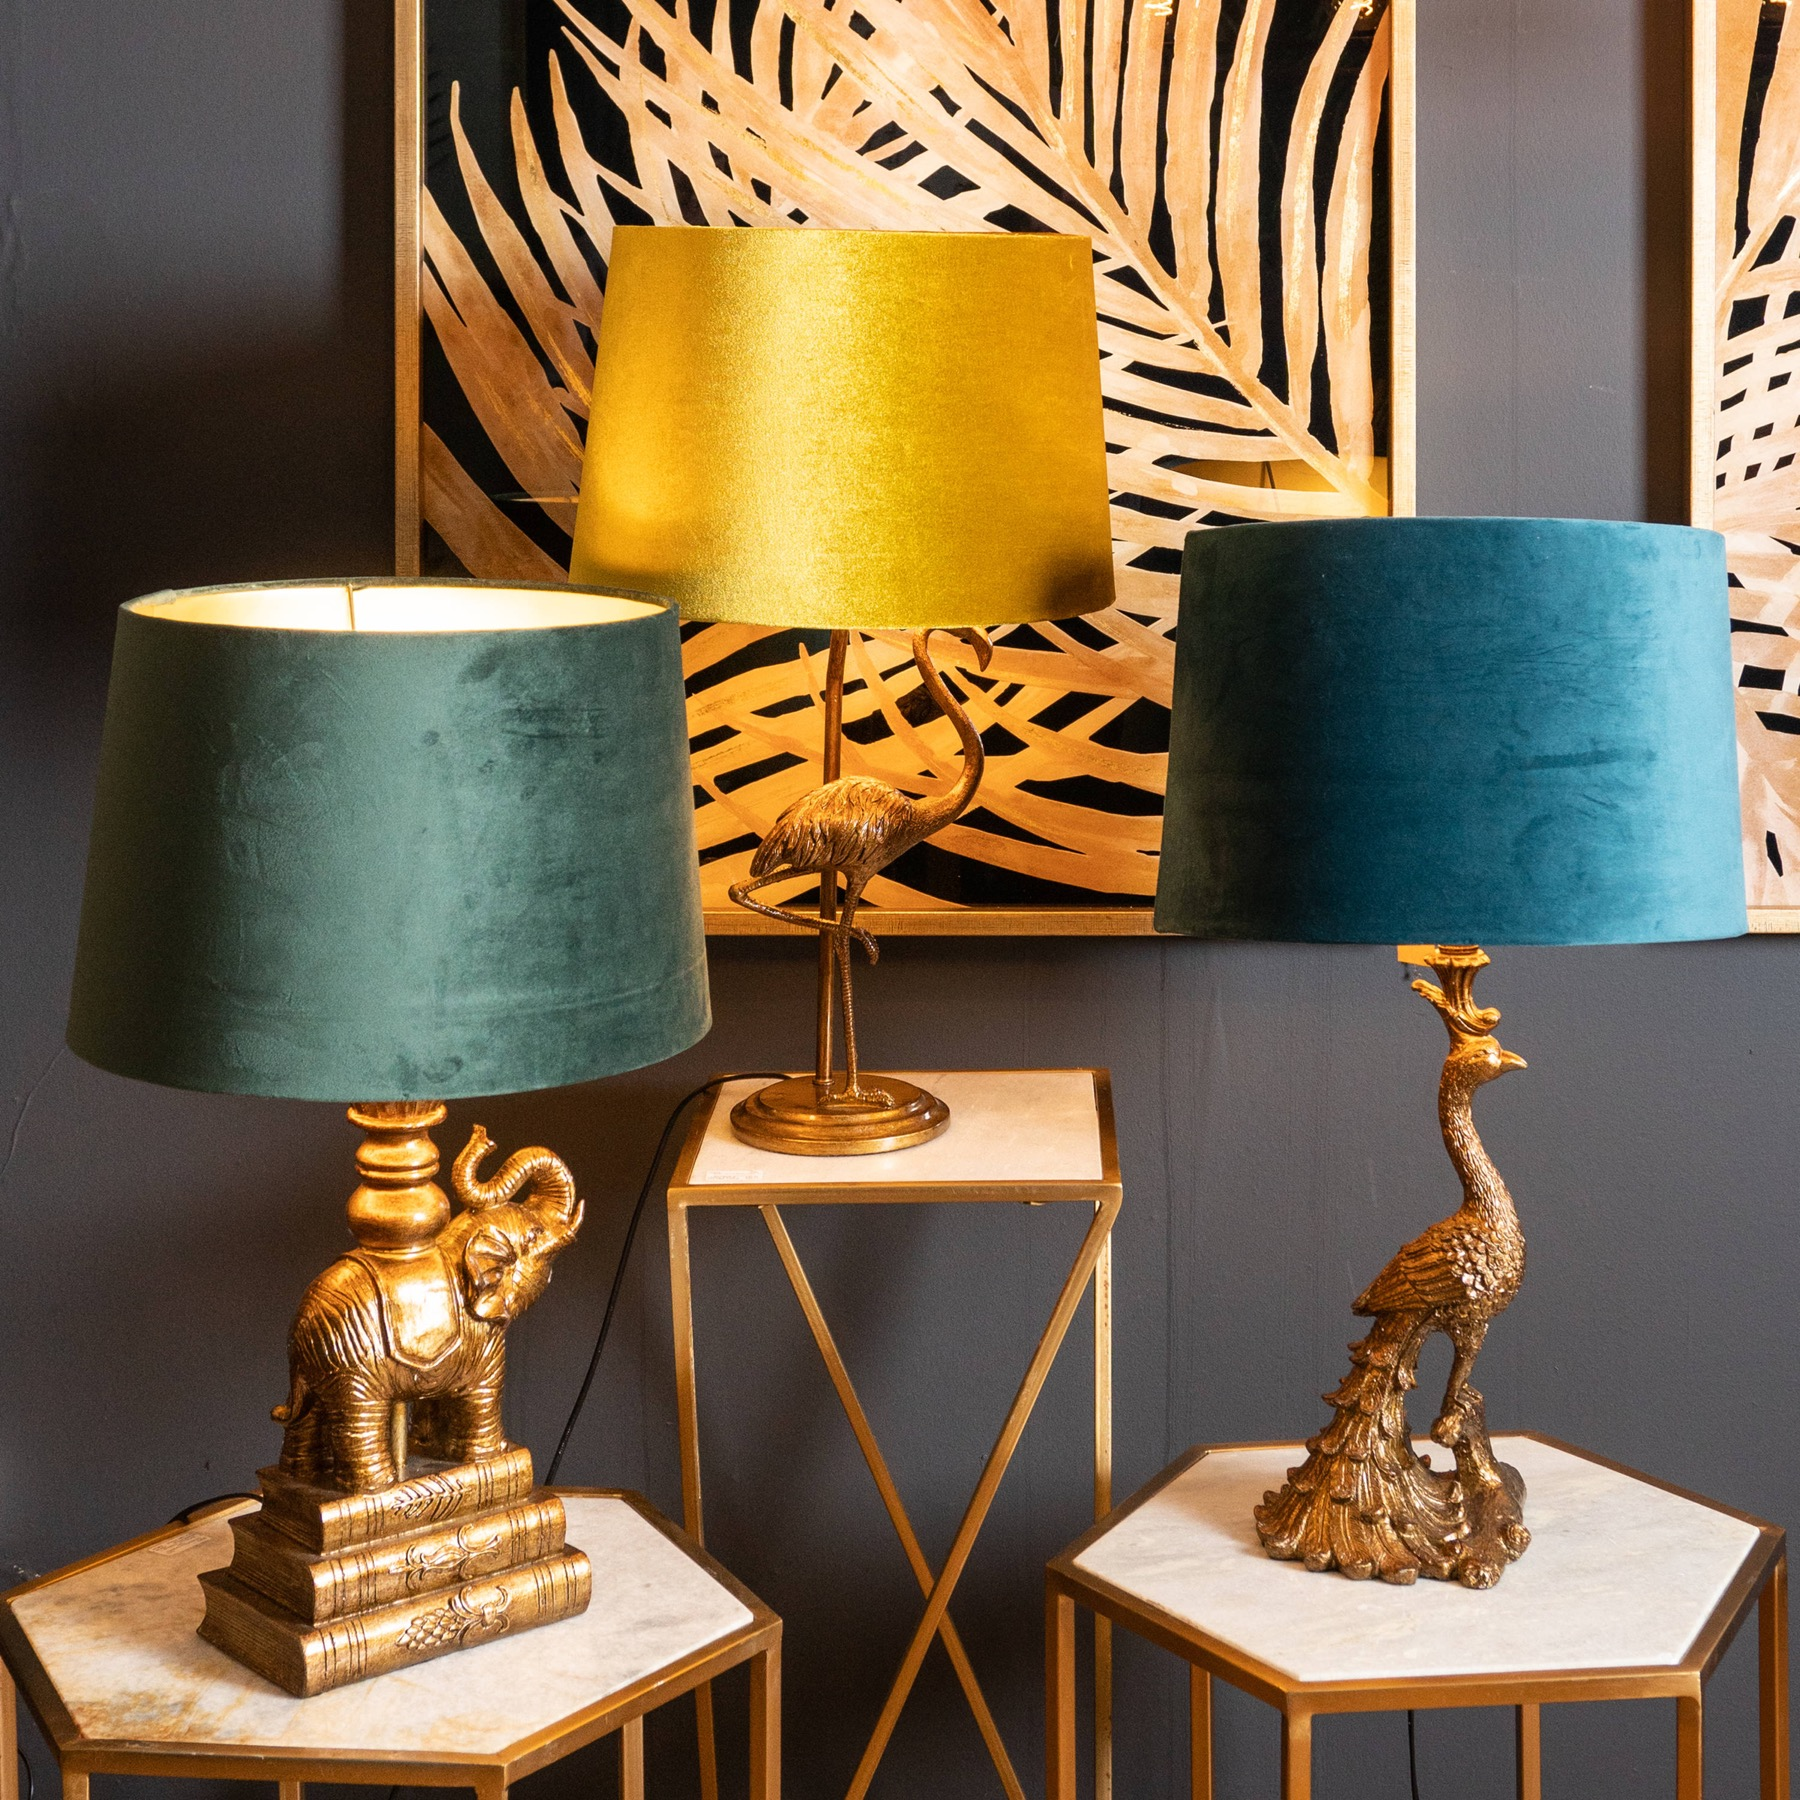 Antique Gold Peacock Table Lamp + Teal Velvet/Gold Shade